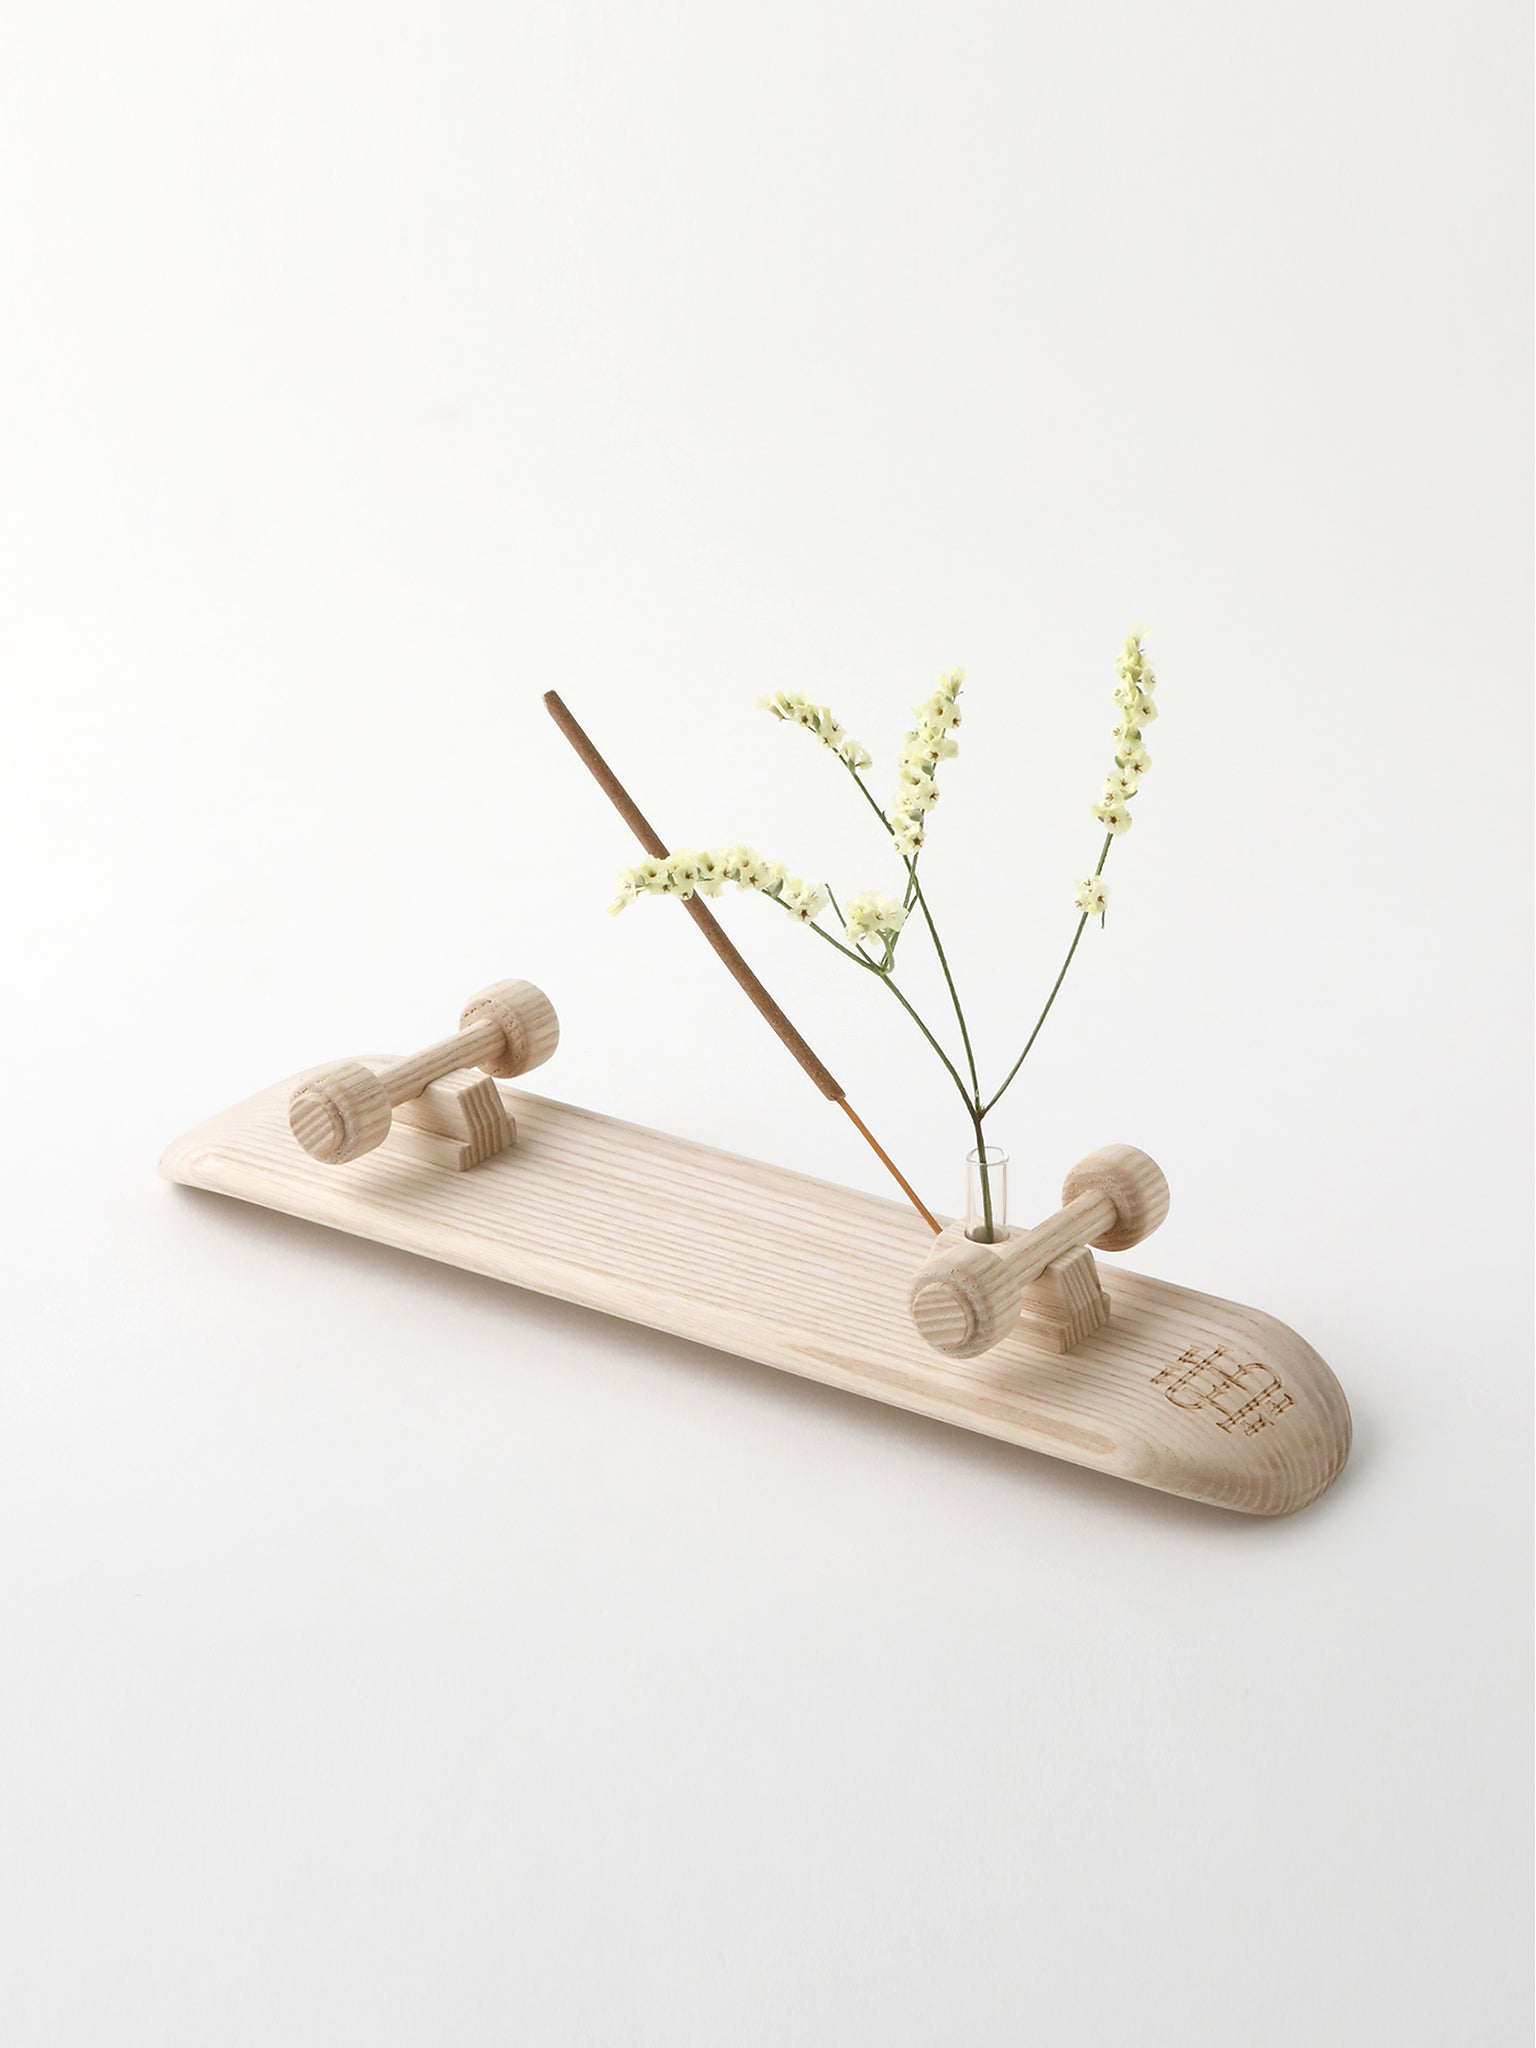 Mini SK8 flower vase, wood